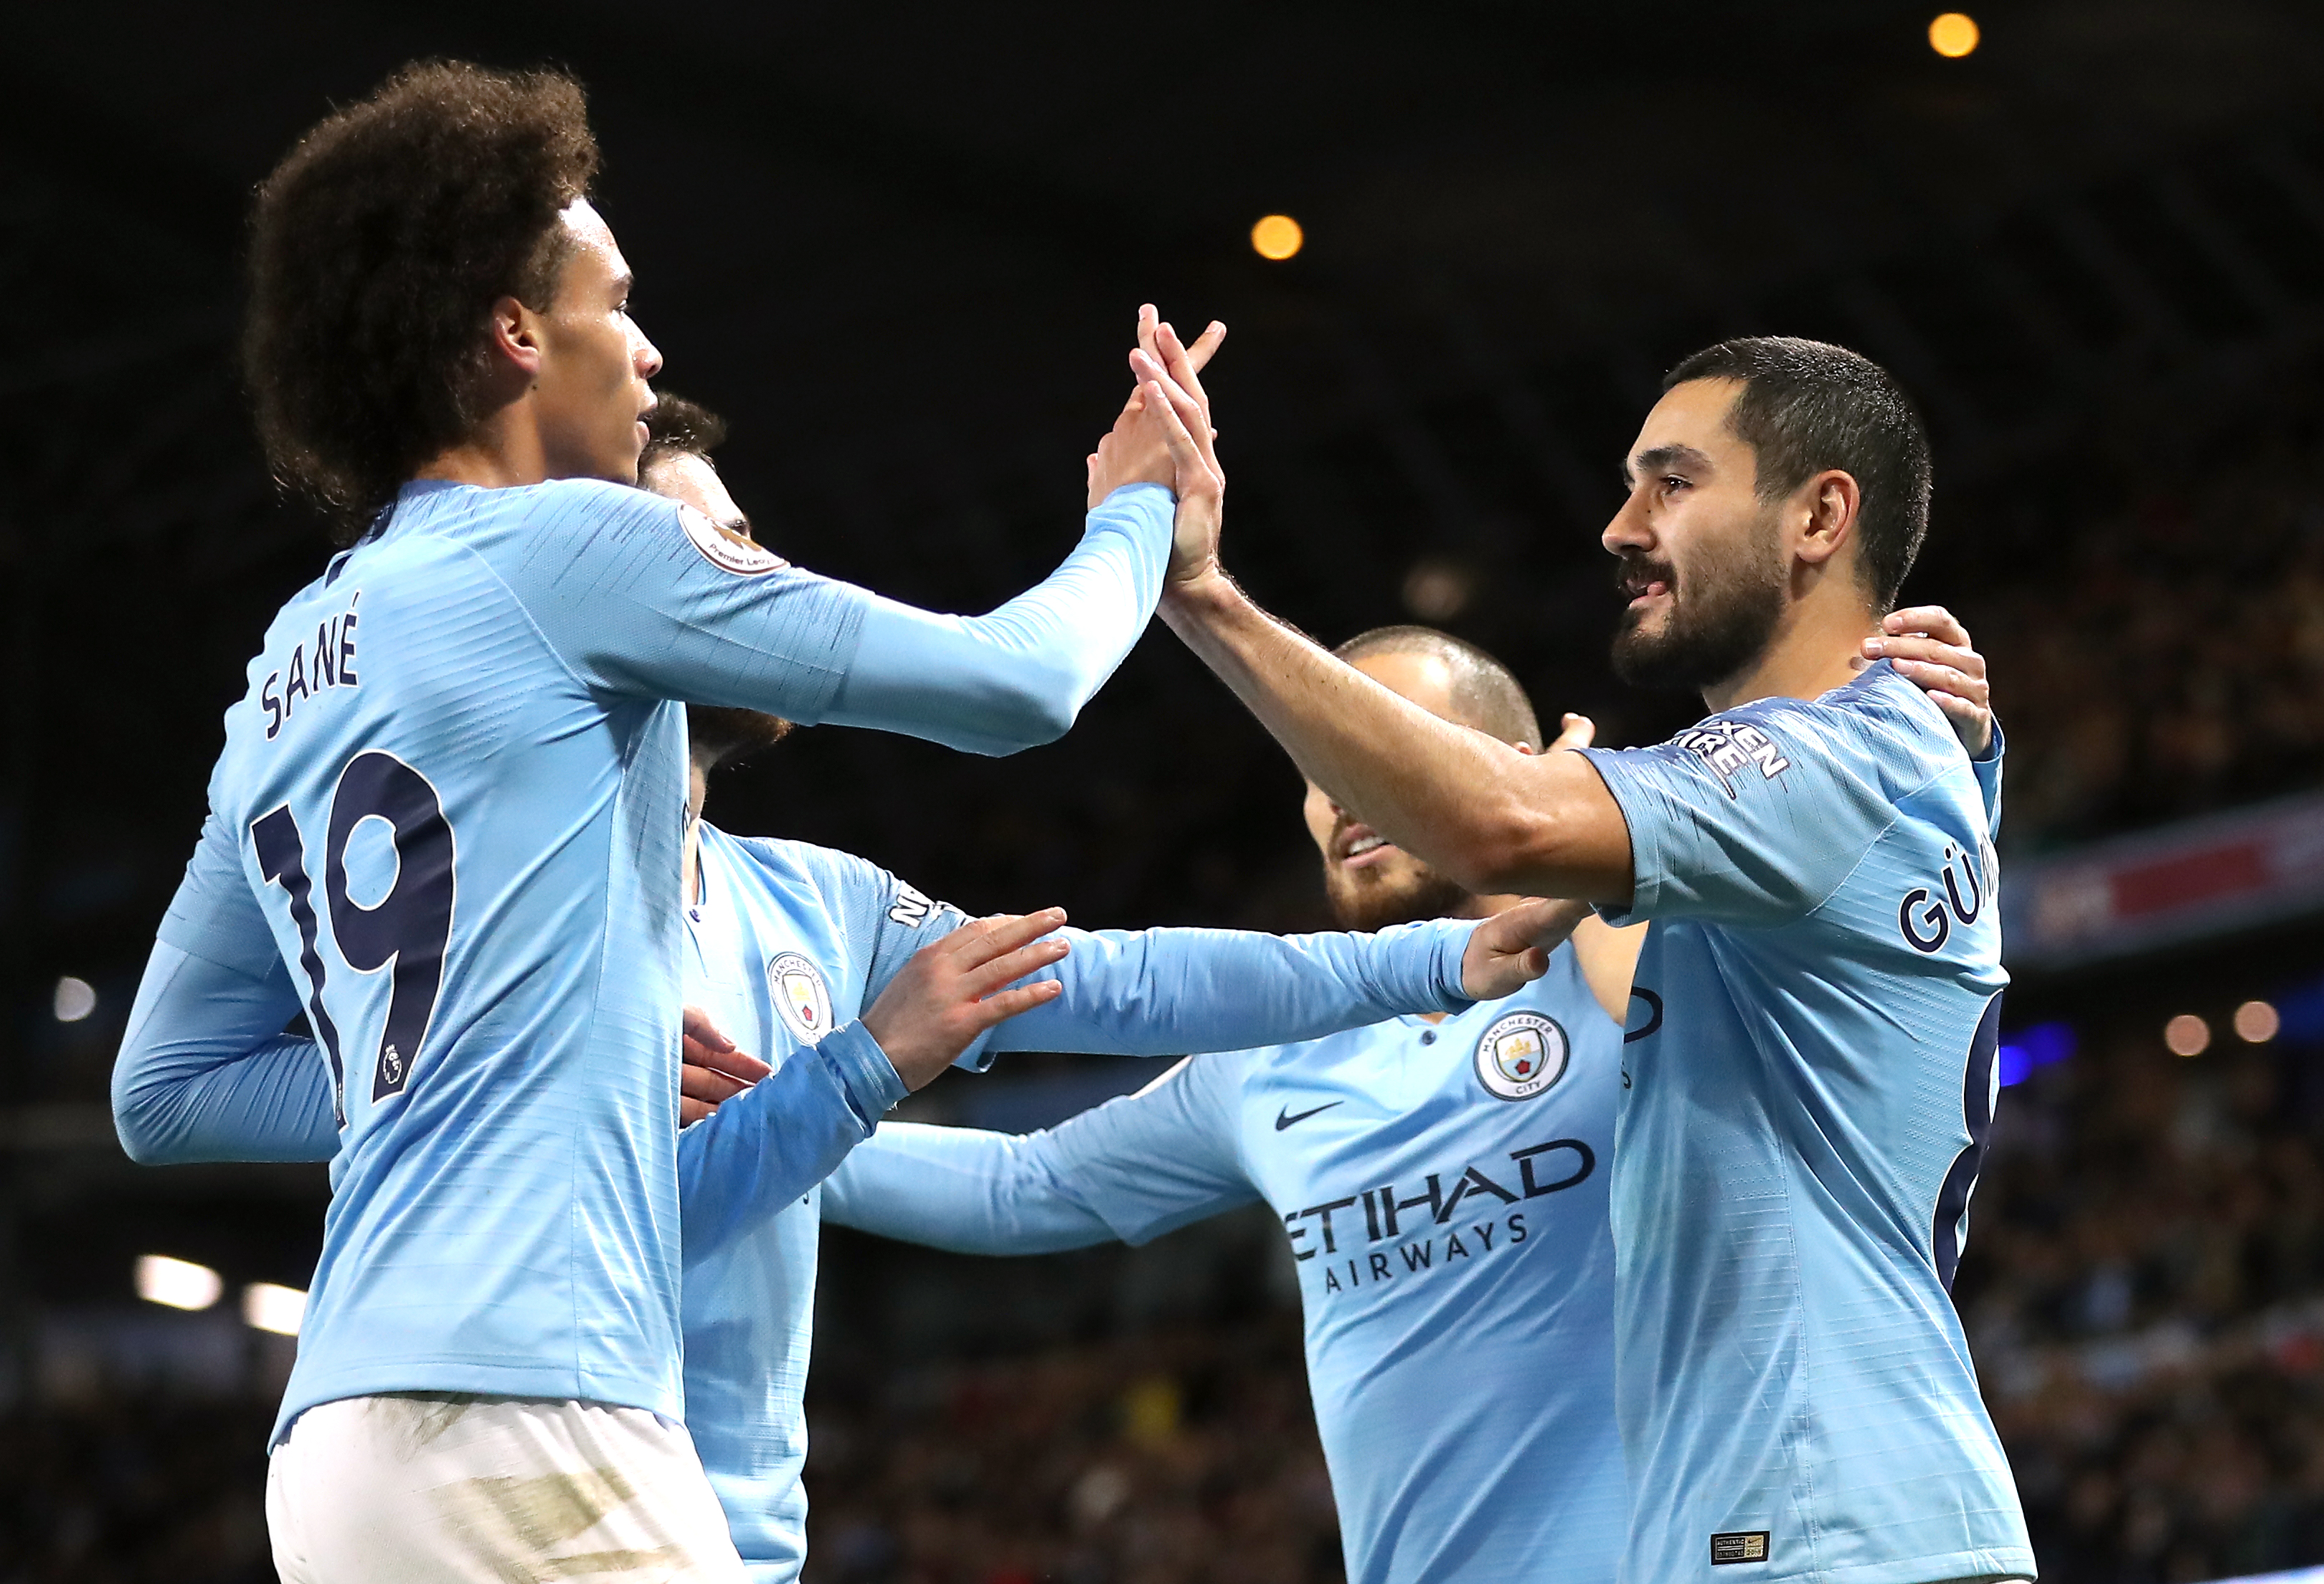 Bayern Munich confirm interest in Manchester City winger